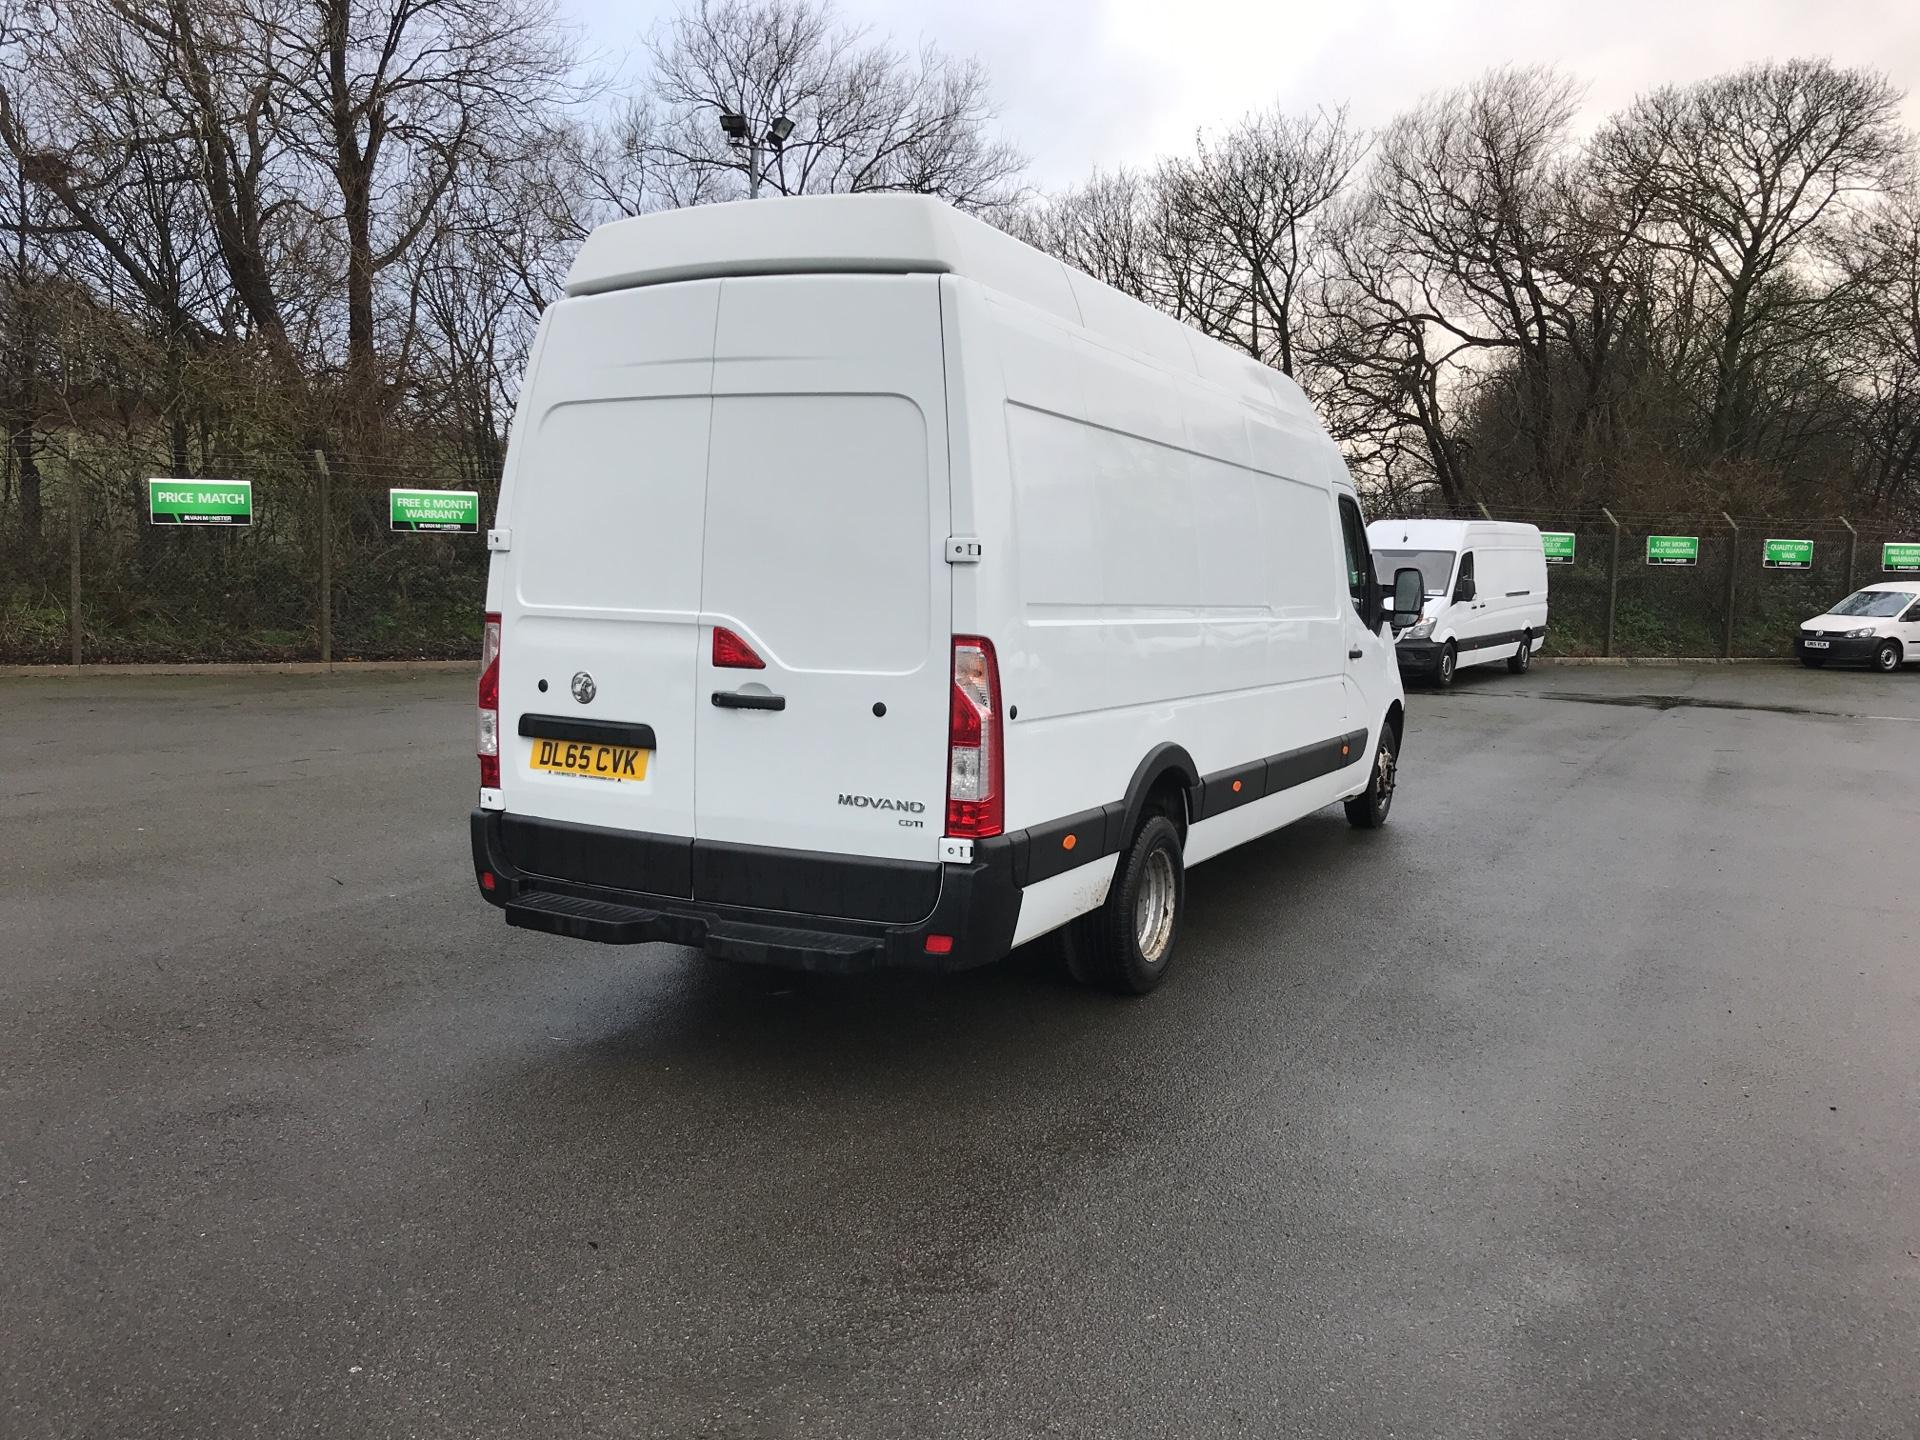 2015 Vauxhall Movano 35 L3 H3 125PS EURO 5 *VALUE RANGE VEHICLE - CONDITION REFLECTED IN PRICE* (DL65CVK) Image 3